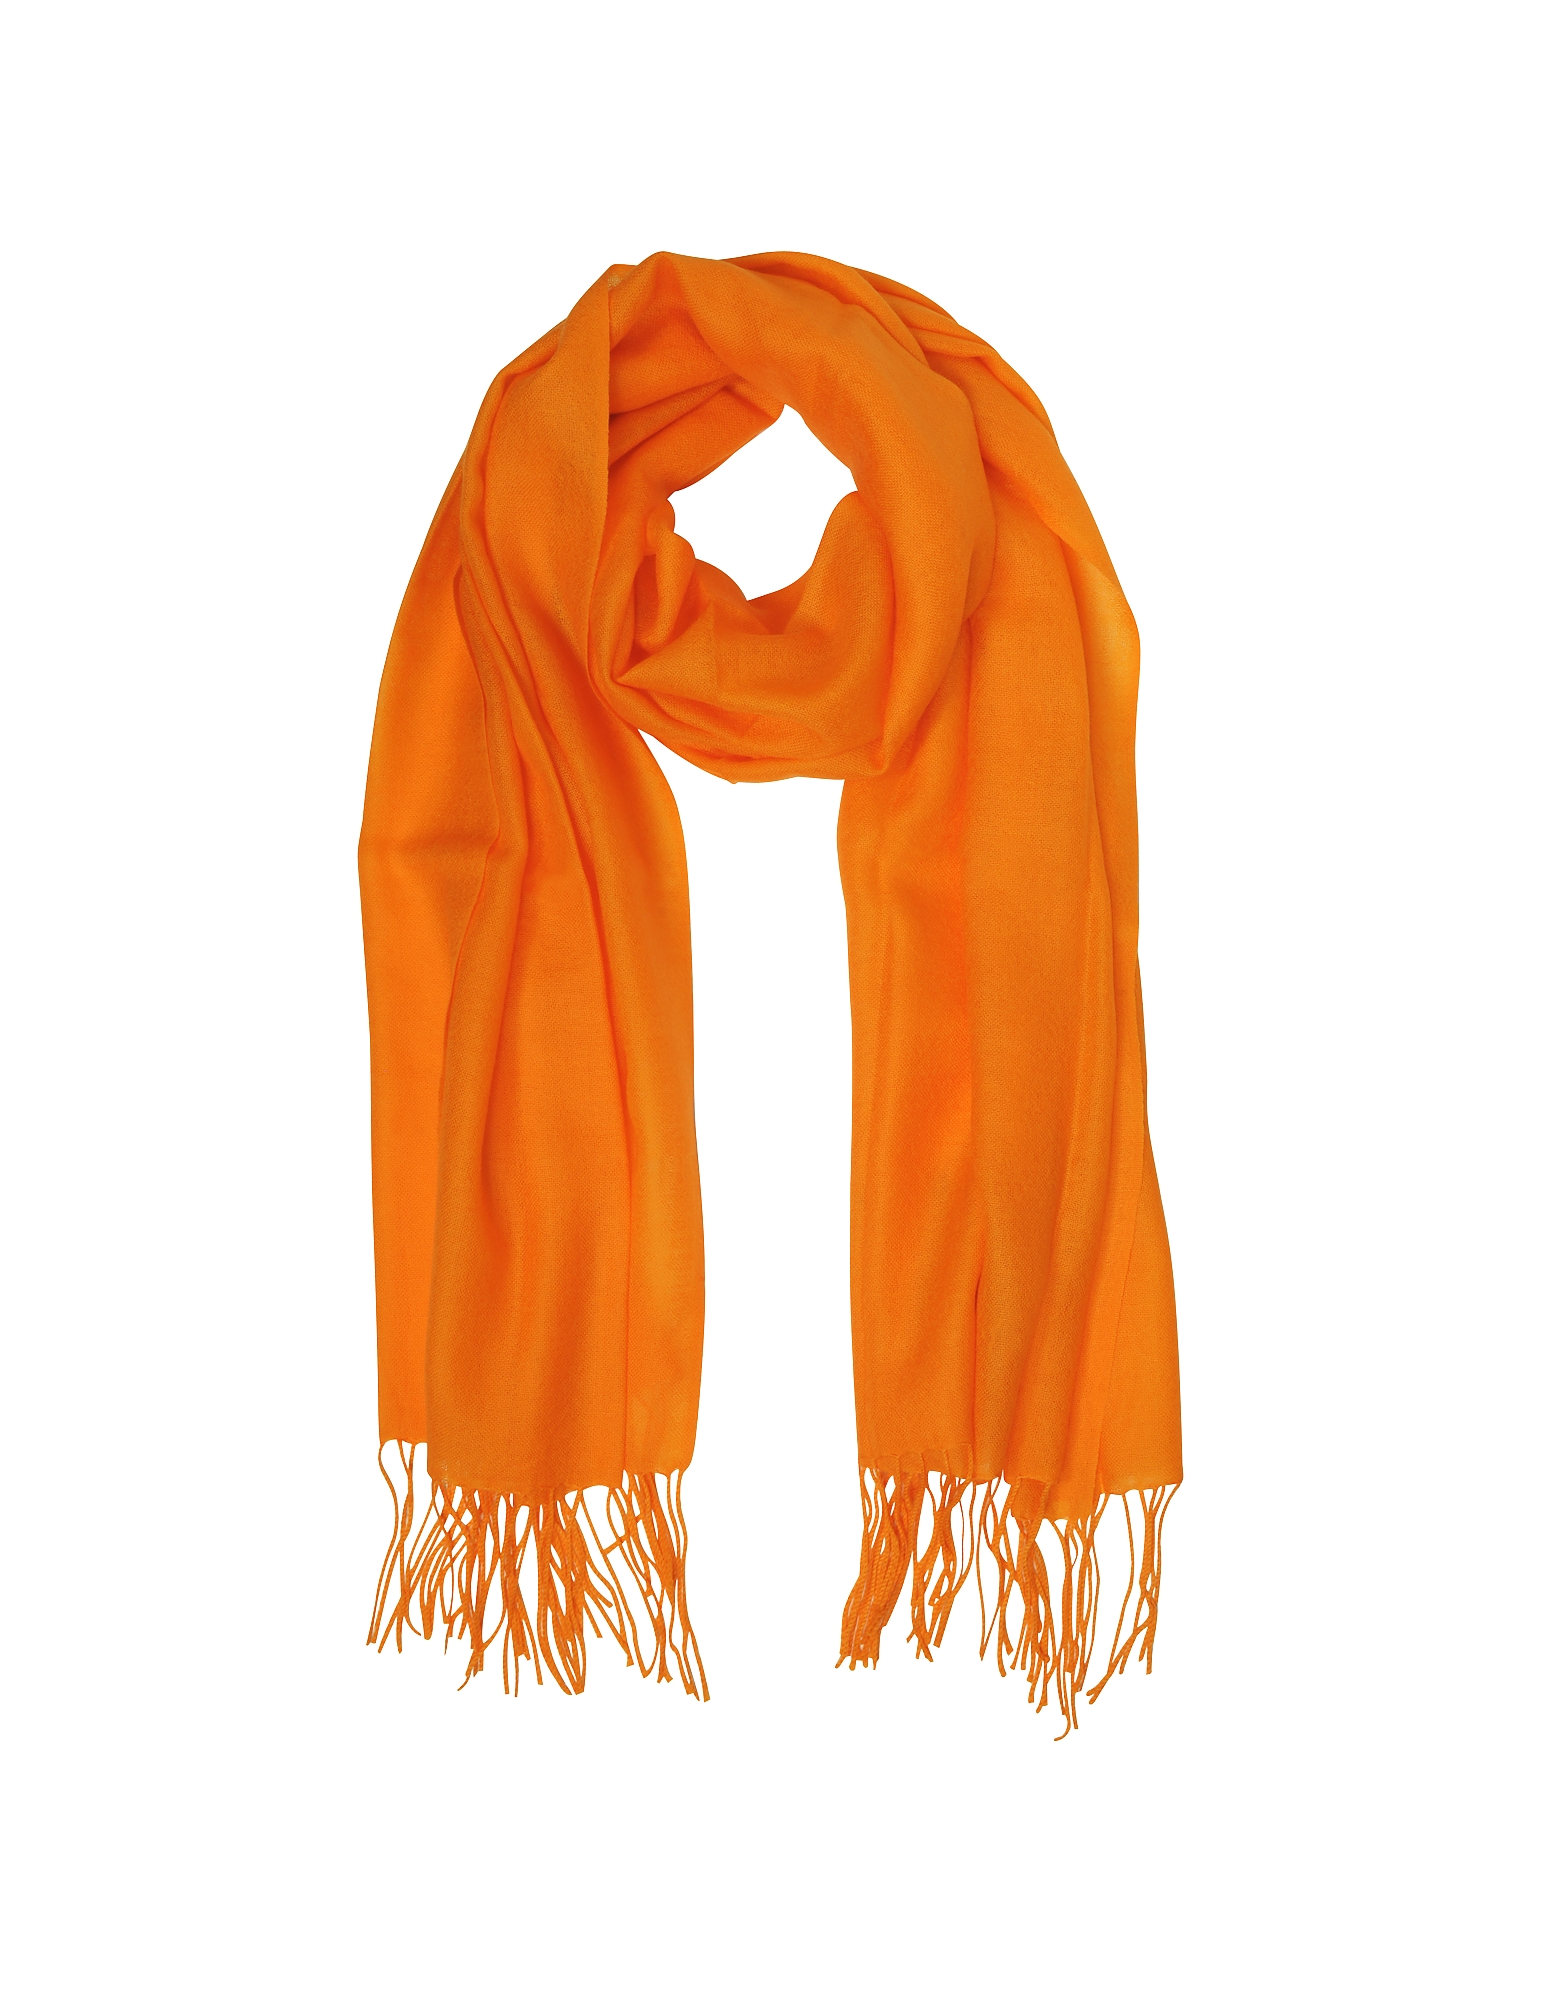 Mila Schon Long Scarves, Orange Wool and Cashmere Fringed Stole